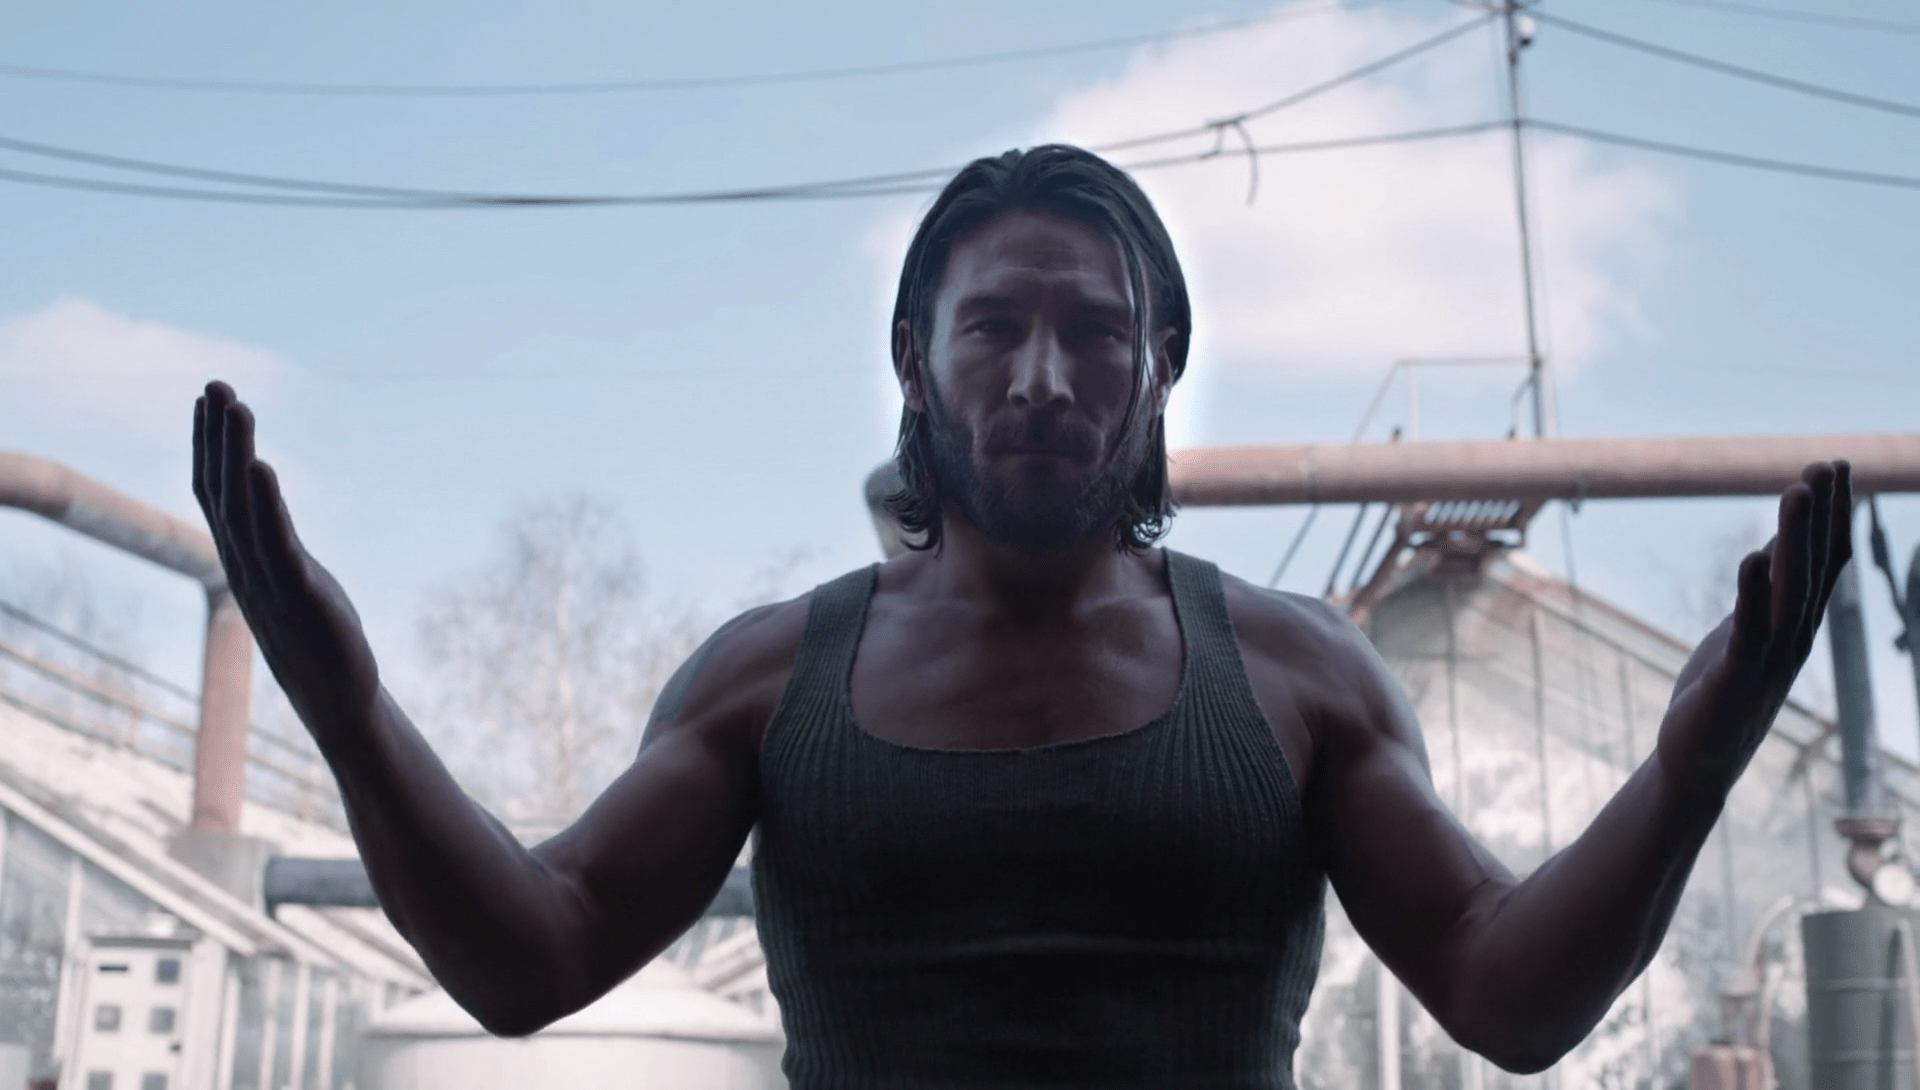 This shot of Zach McGowan was most likely supposed to be a center shot, but it's just slightly off.